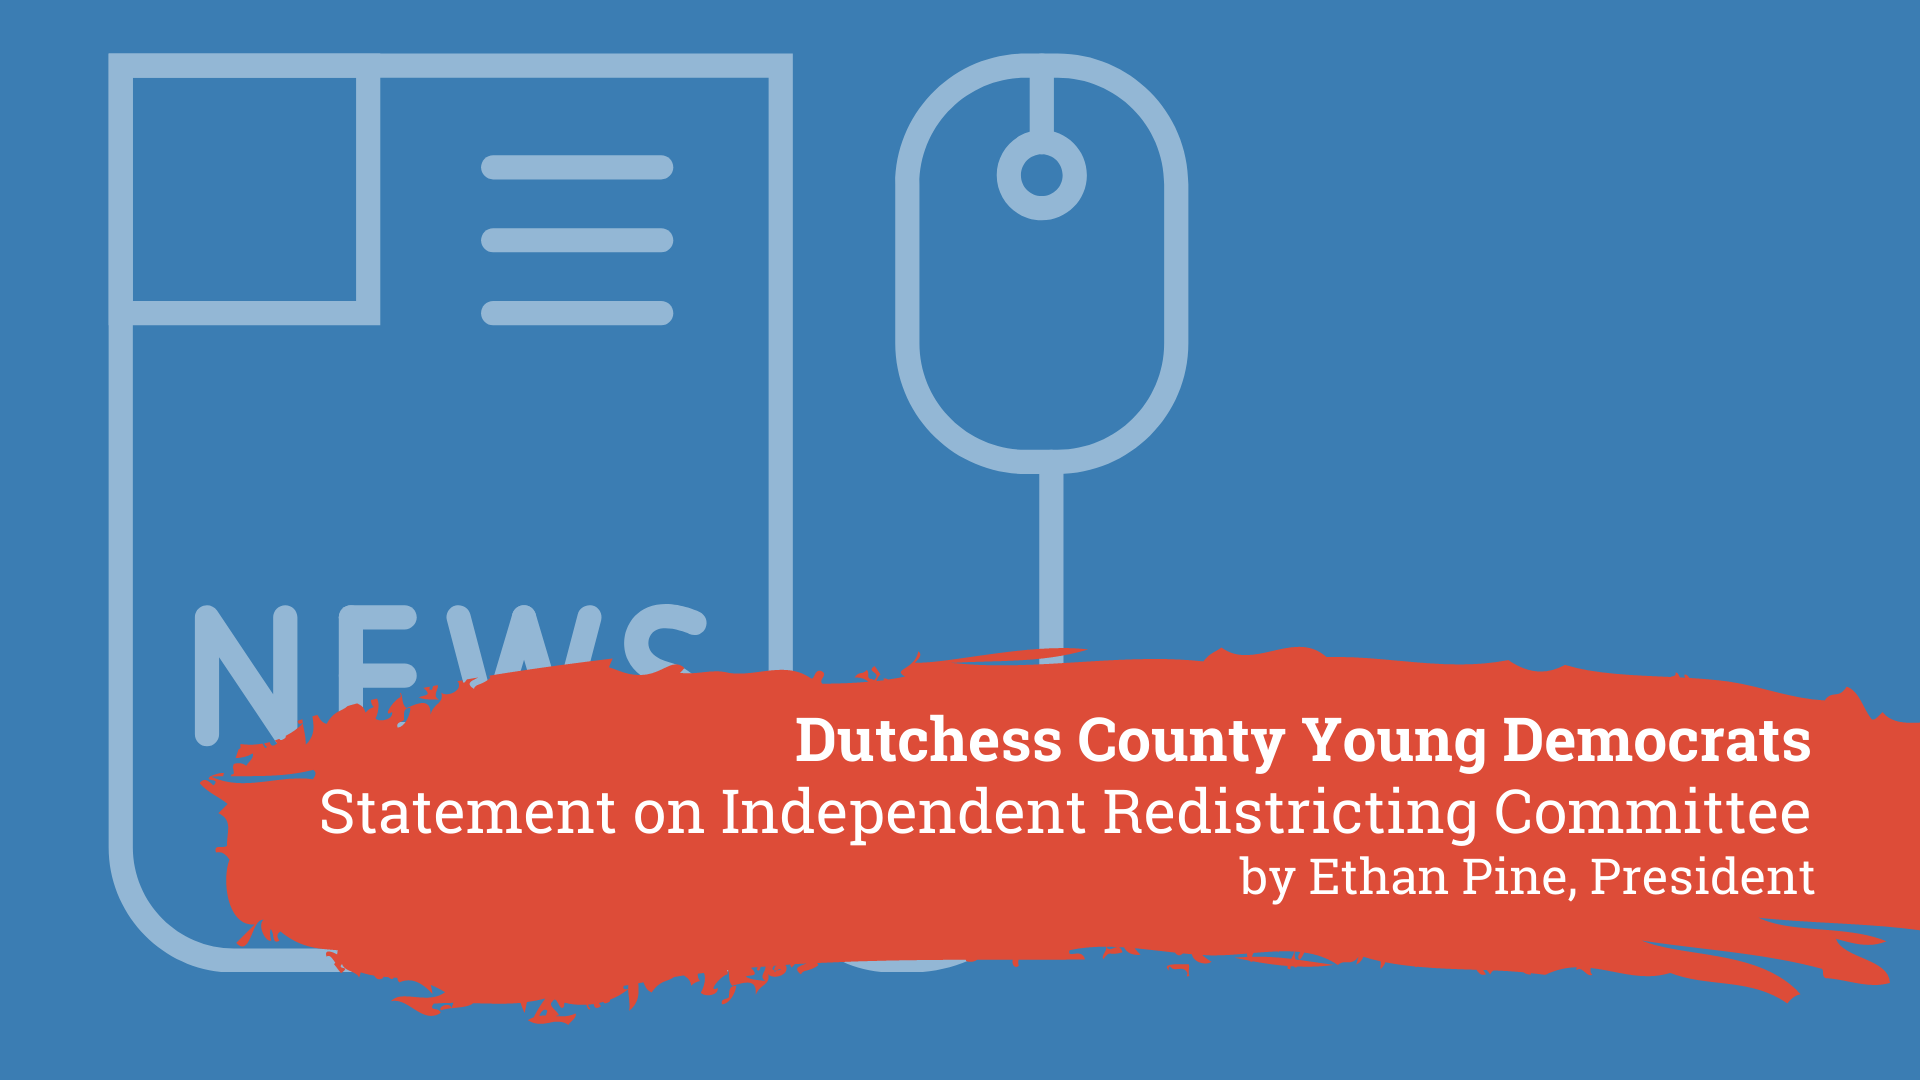 Statement on Redistricting Committee Graphic